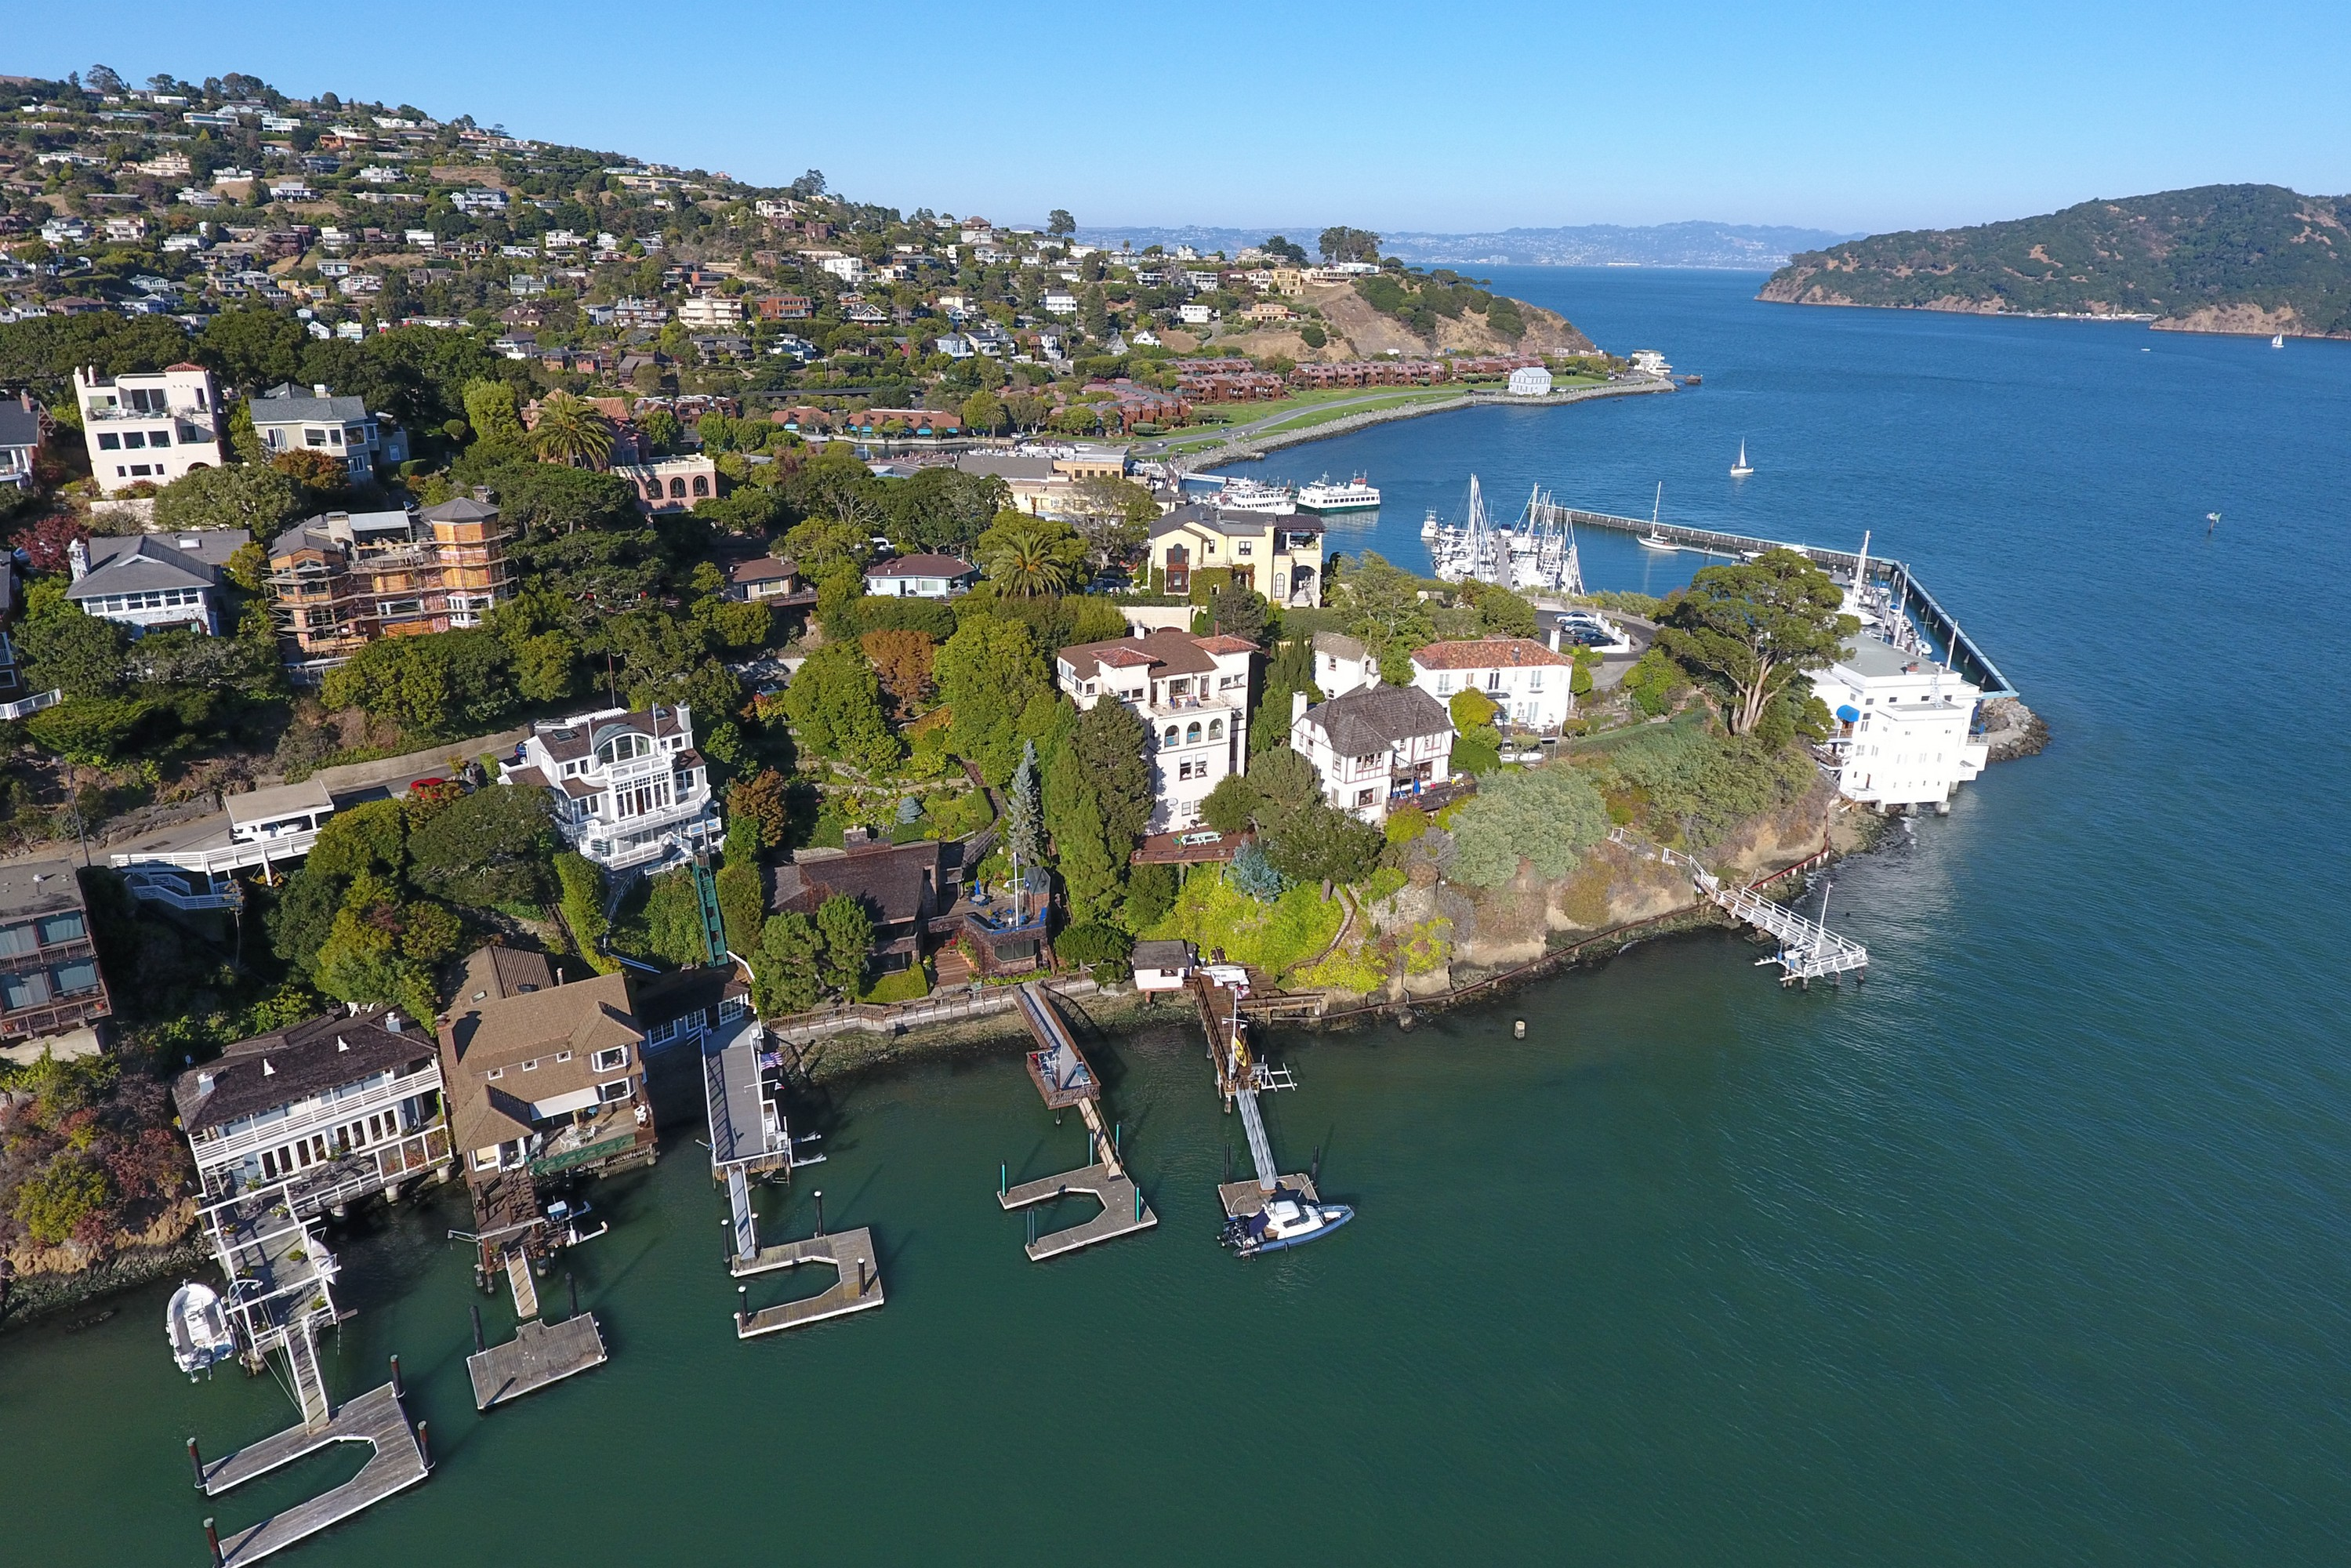 Single Family Home for Sale at Prime Waterfront Home with Boat Dock and Beach House 71 Bellevue Avenue Belvedere, California 94920 United States